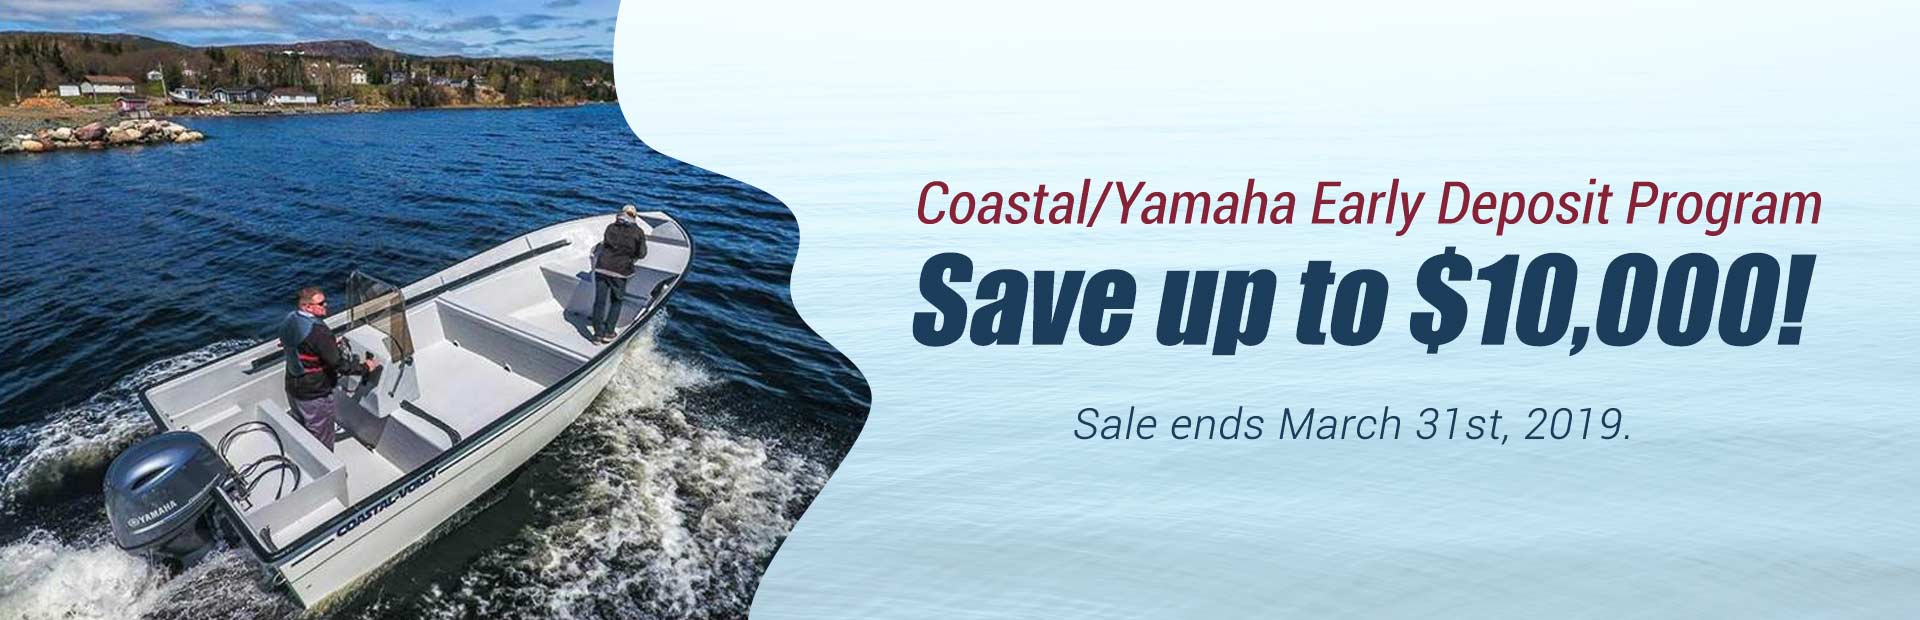 Coastal/Yamaha Early Deposit Program: Save up to $10,000!